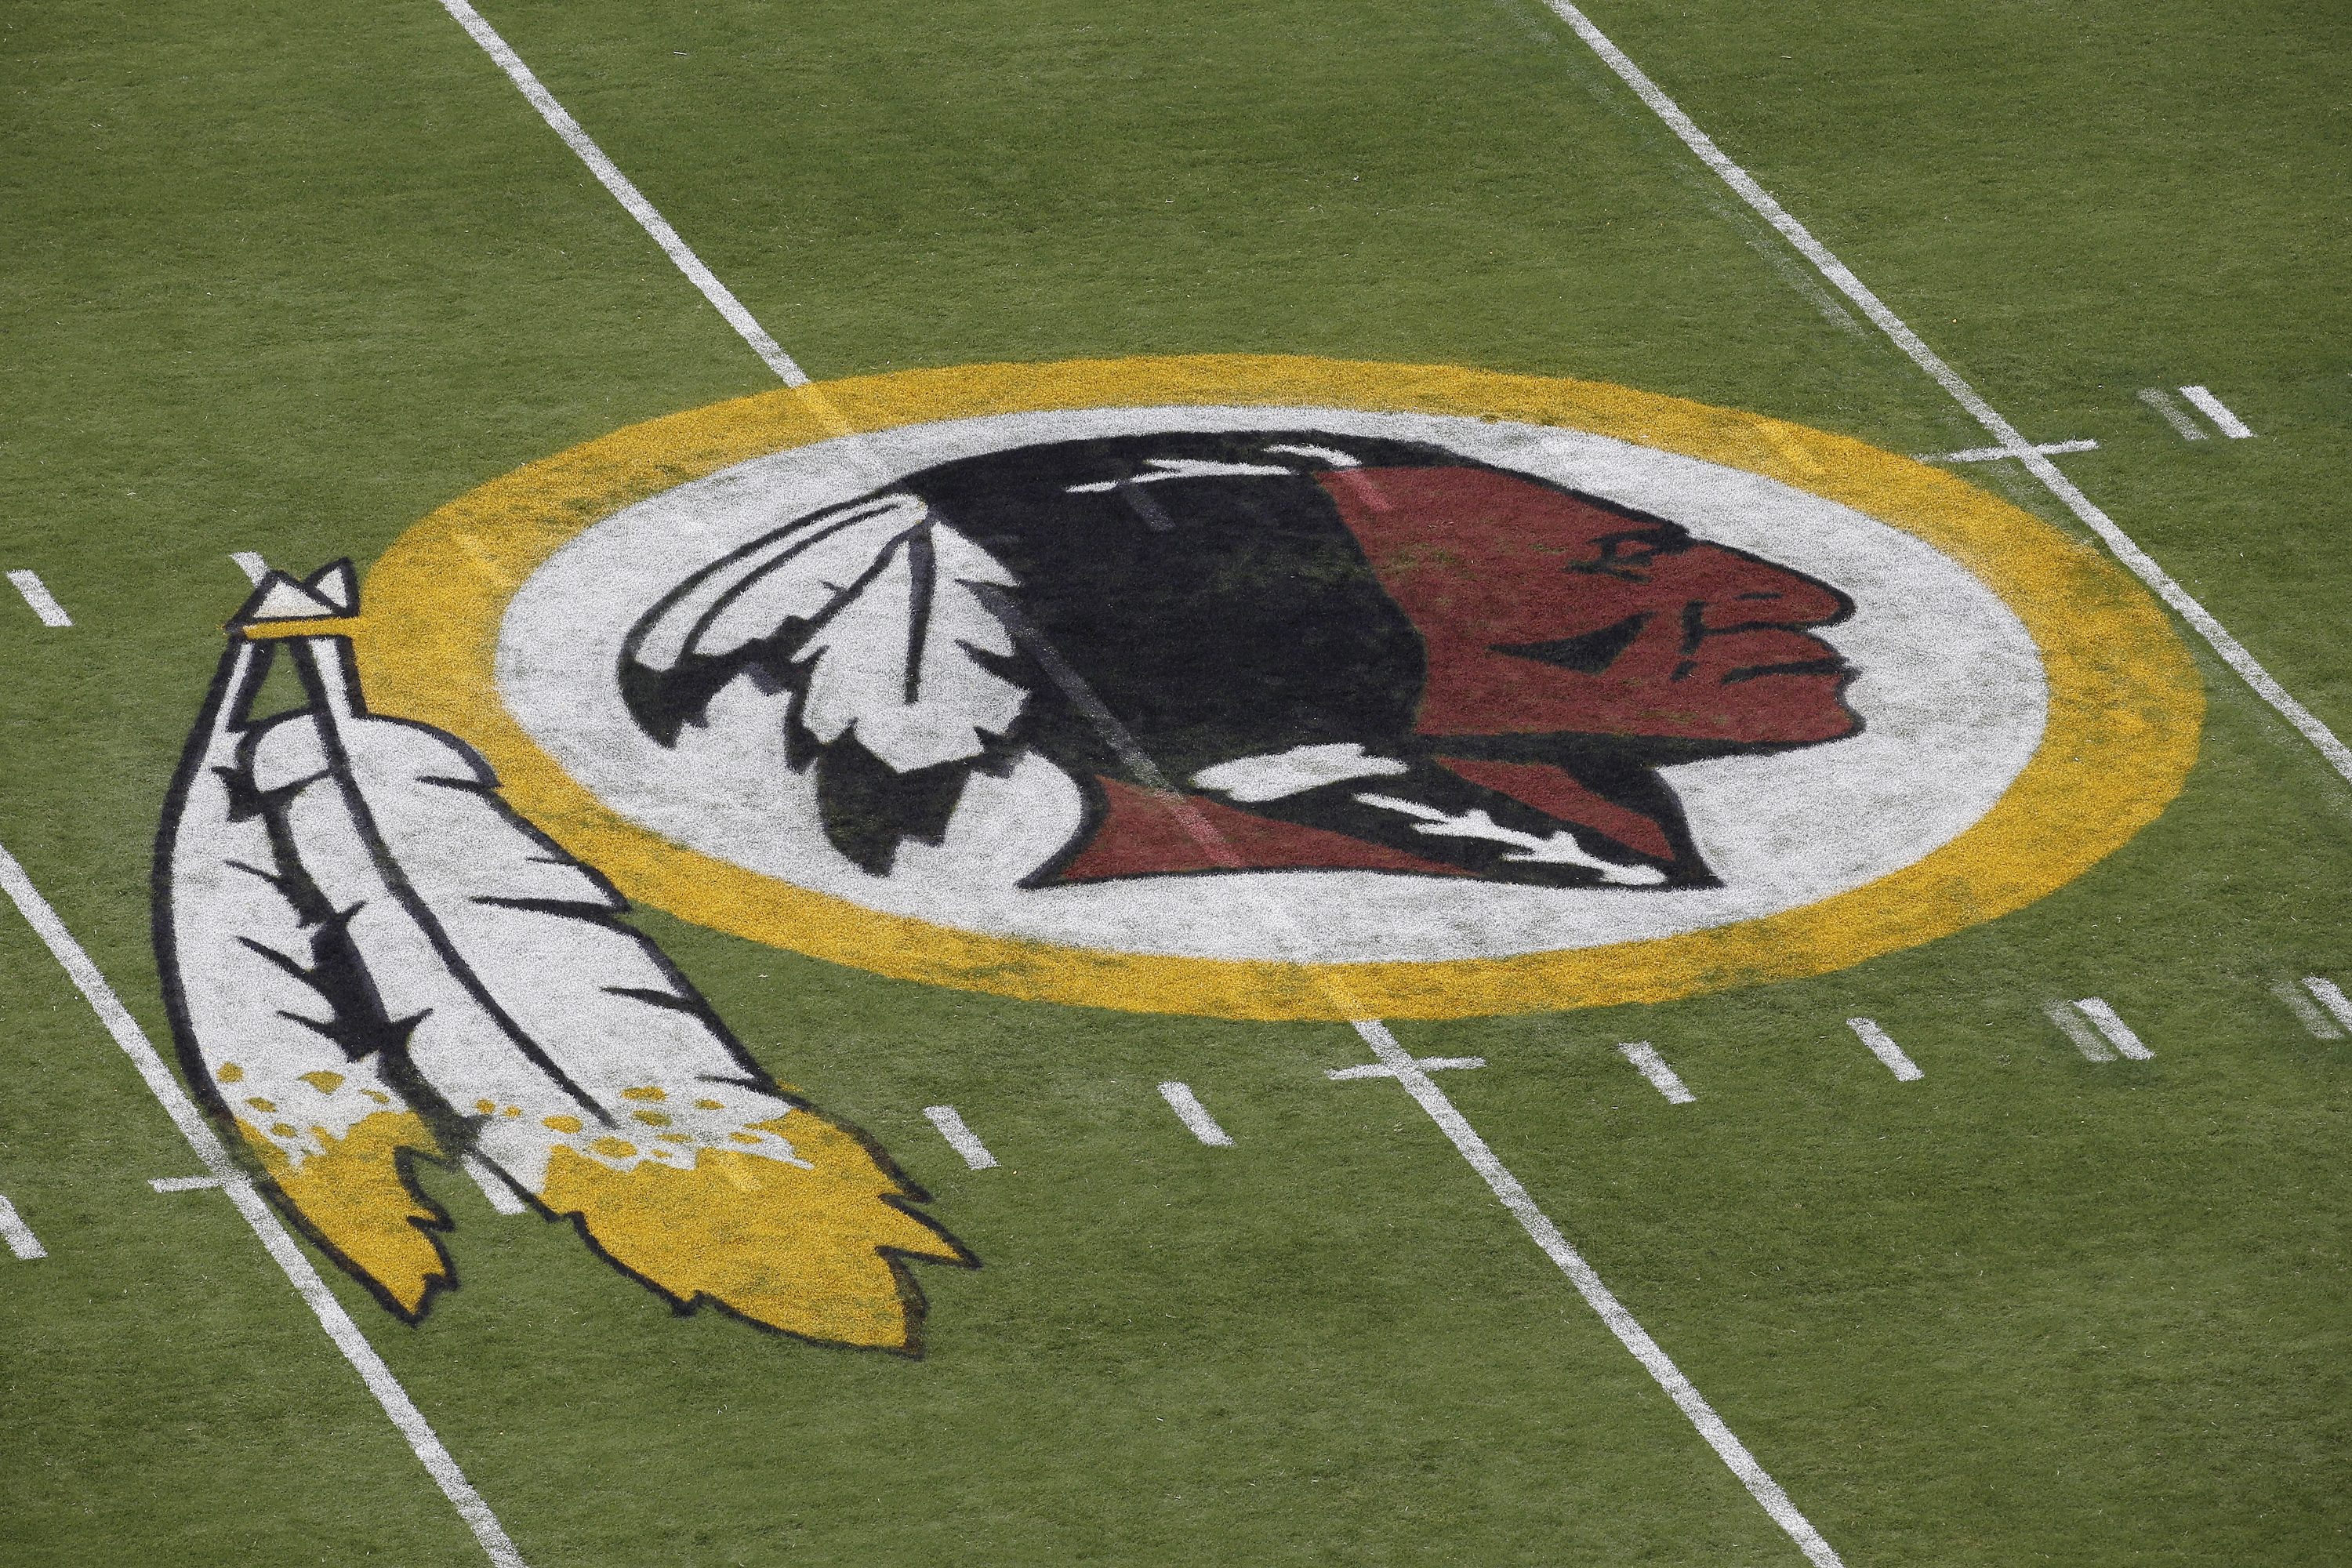 In this Aug. 7, 2014 file photo, the Washington Redskins NFL football team logo is seen on the field before an NFL football preseason game against the New England Patriots in Landover, Md.